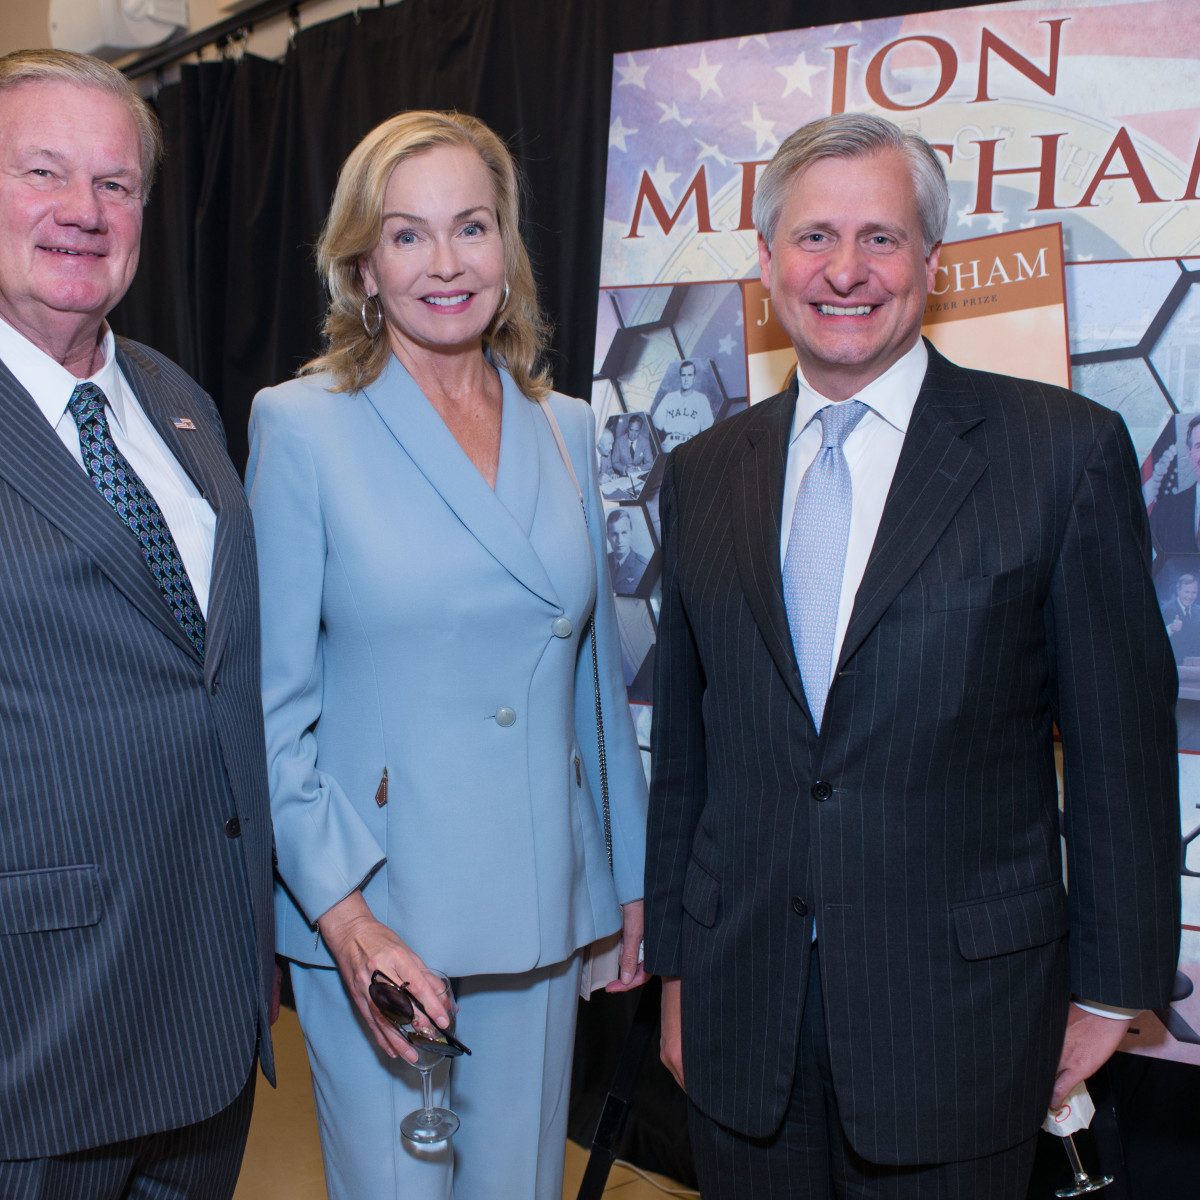 Celebration of Reading 4/16, Keith Mosing, Alice Mosing, Jon Meacham